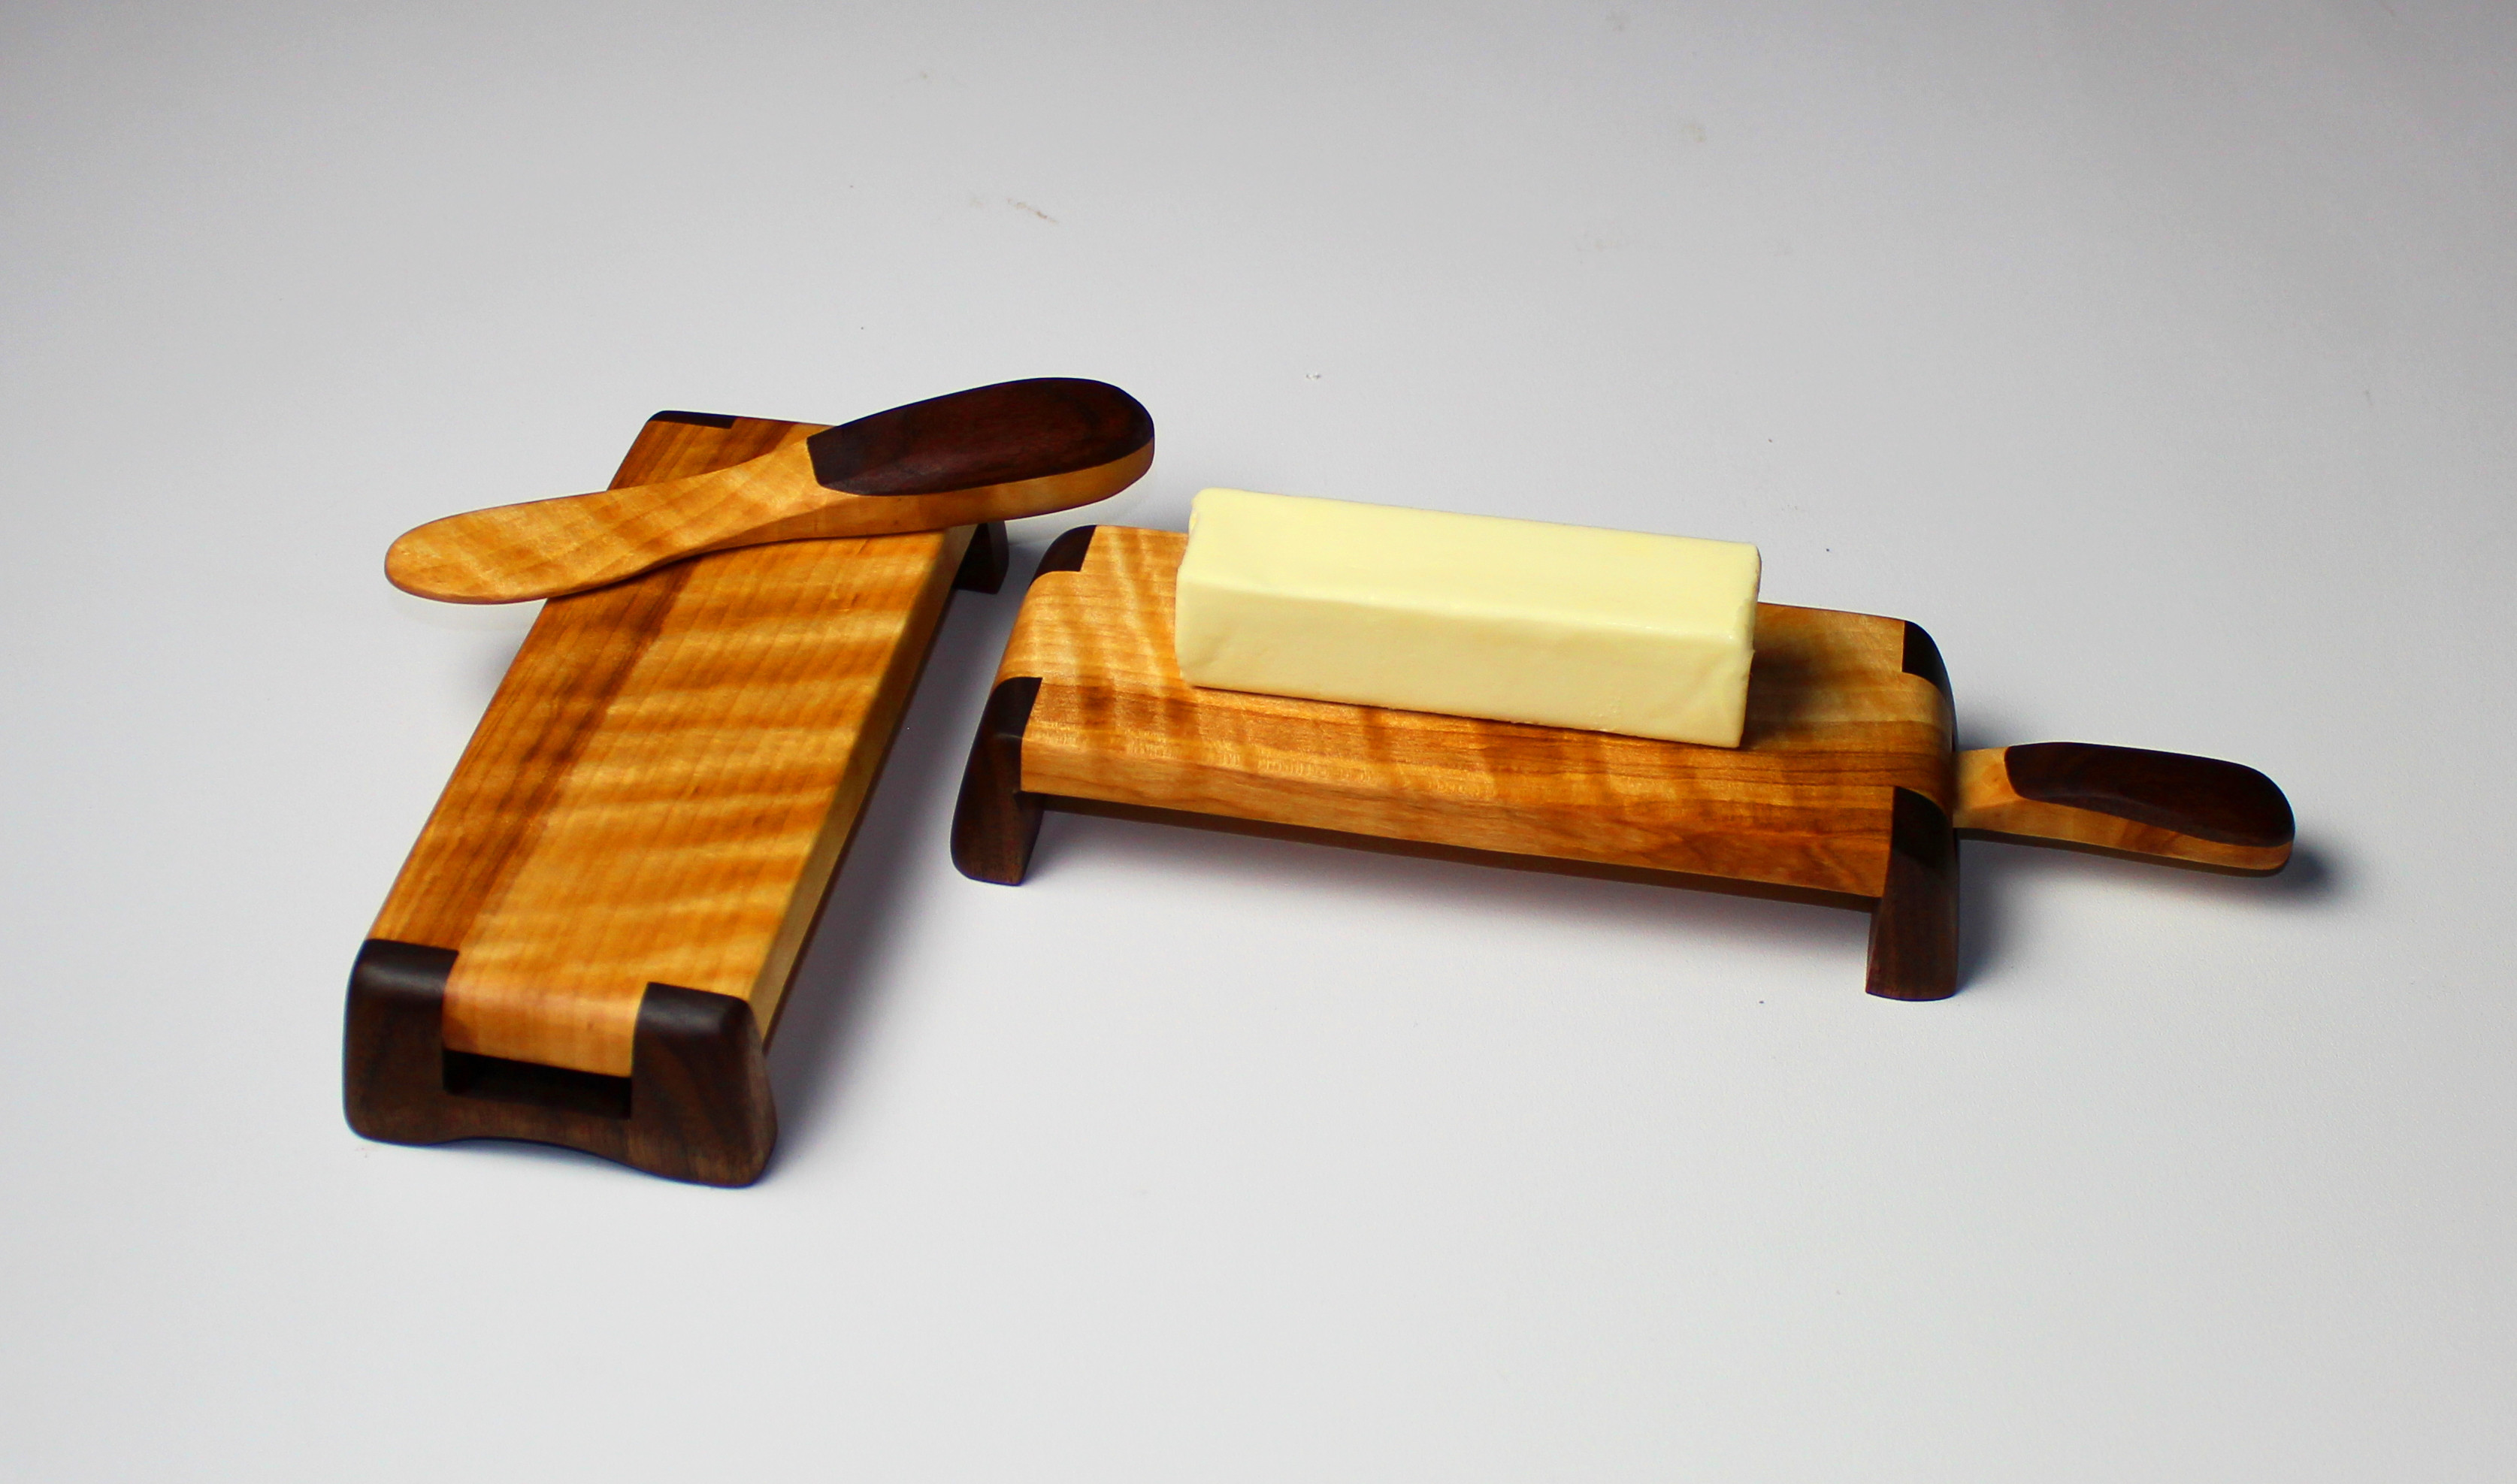 Best ideas about Wood Worker Gift Ideas . Save or Pin DIY Butter Dish and Spreader Set Now.